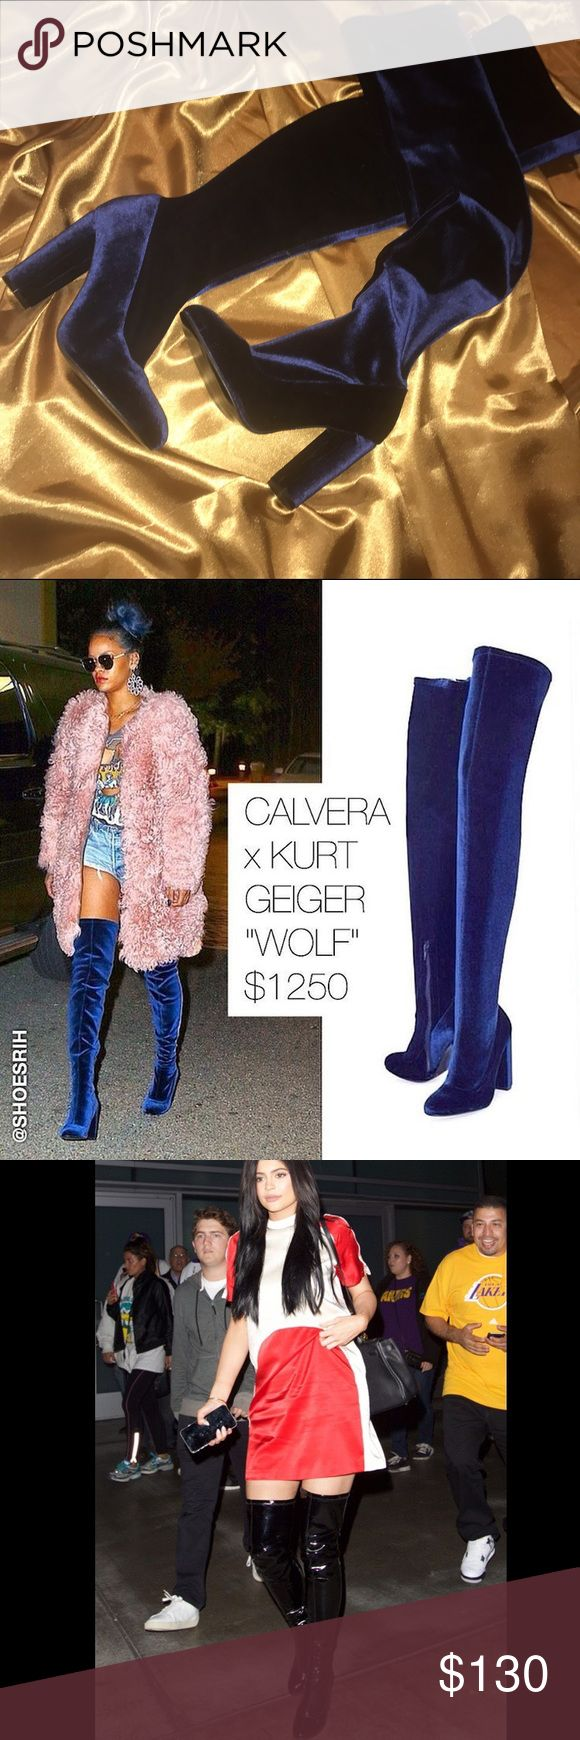 Kurt Geiger Velvet Thigh Highs seen on Rihanna Kurt Geiger Blue Velvet Thigh Highs as seen on Rihanna & Kylie Jenner. Kylie had on the black, leather version. Selling for a fraction of the price & open to offers. Never worn before! Size 39. There were no tags attached with purchase but can send my receipt. Kurt Geiger Shoes Over the Knee Boots